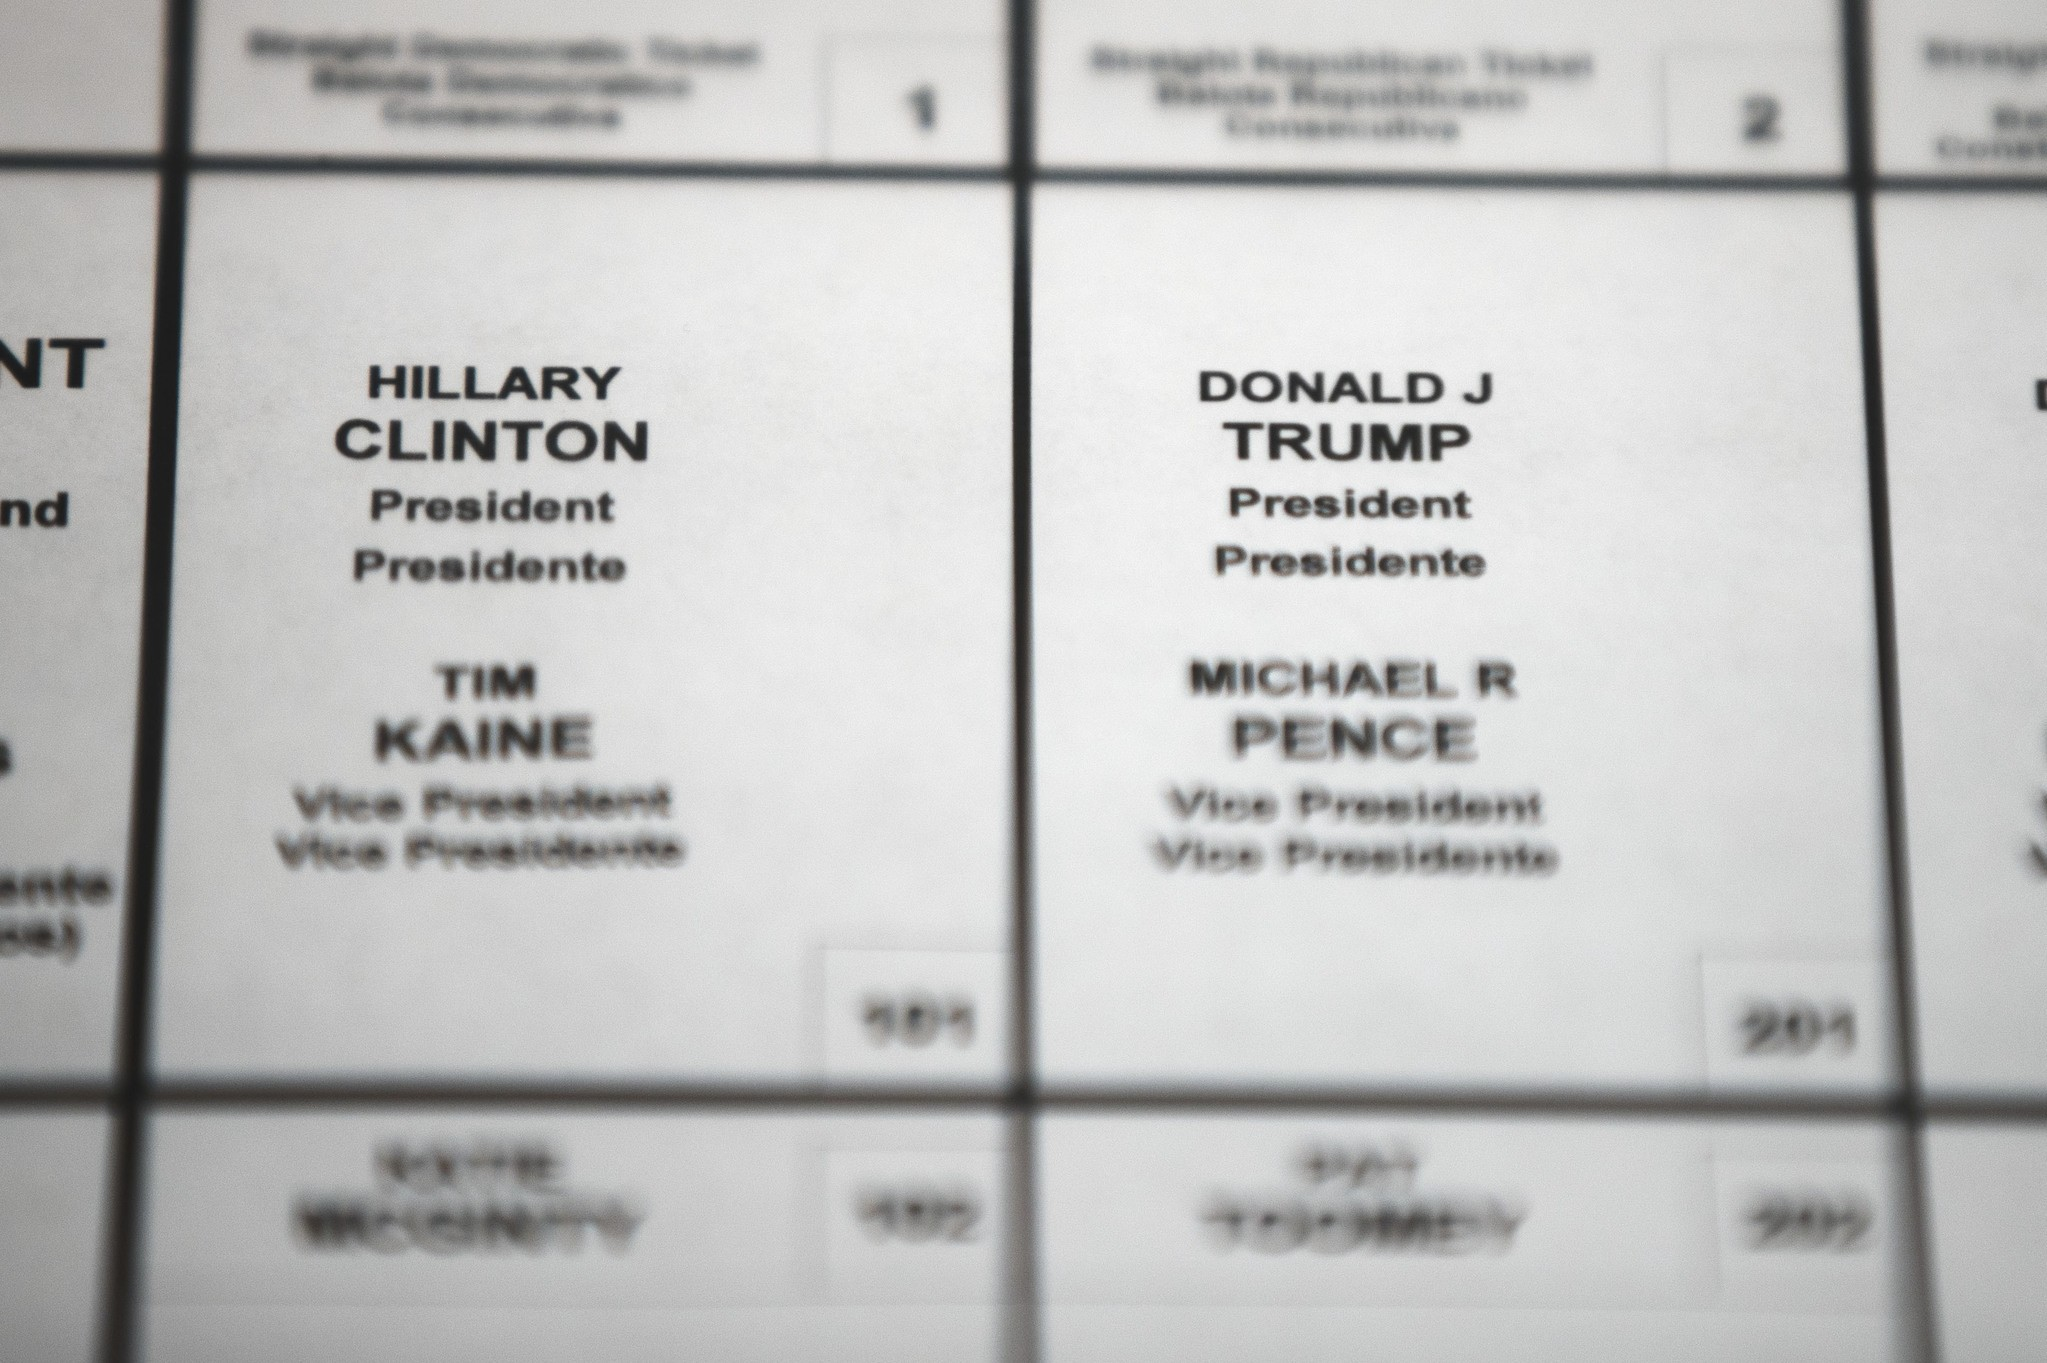 This Oct. 14, 2016 file photo shows Democratic presidential candidate Hillary Clinton's and Republican presidential candidate Donald Trump's names printed on a ballot on a voting machine. (AP Photo)